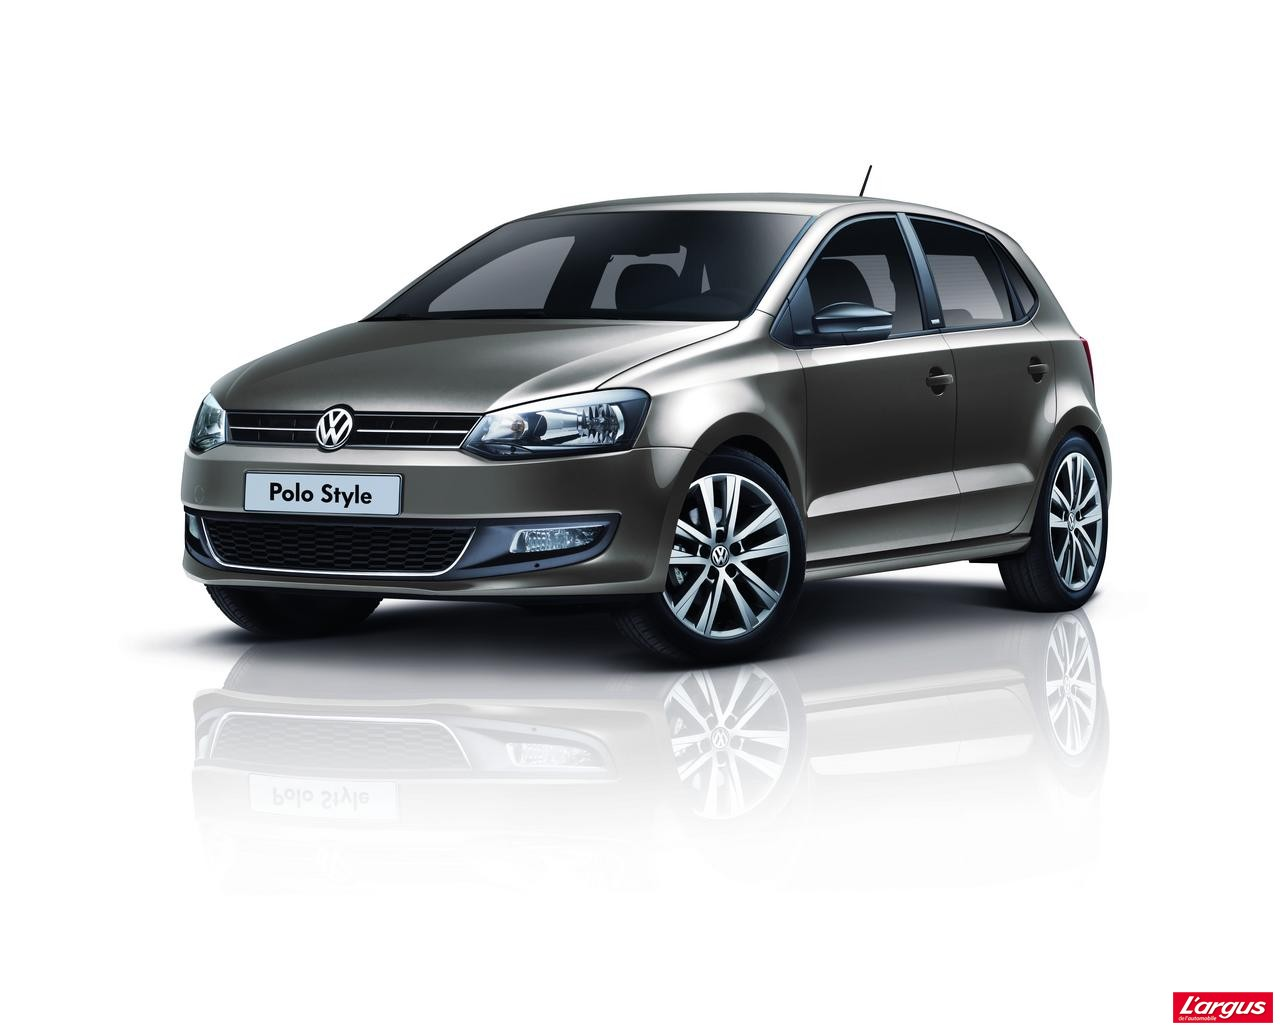 volkswagen polo et golf quel style photo 1 l 39 argus. Black Bedroom Furniture Sets. Home Design Ideas